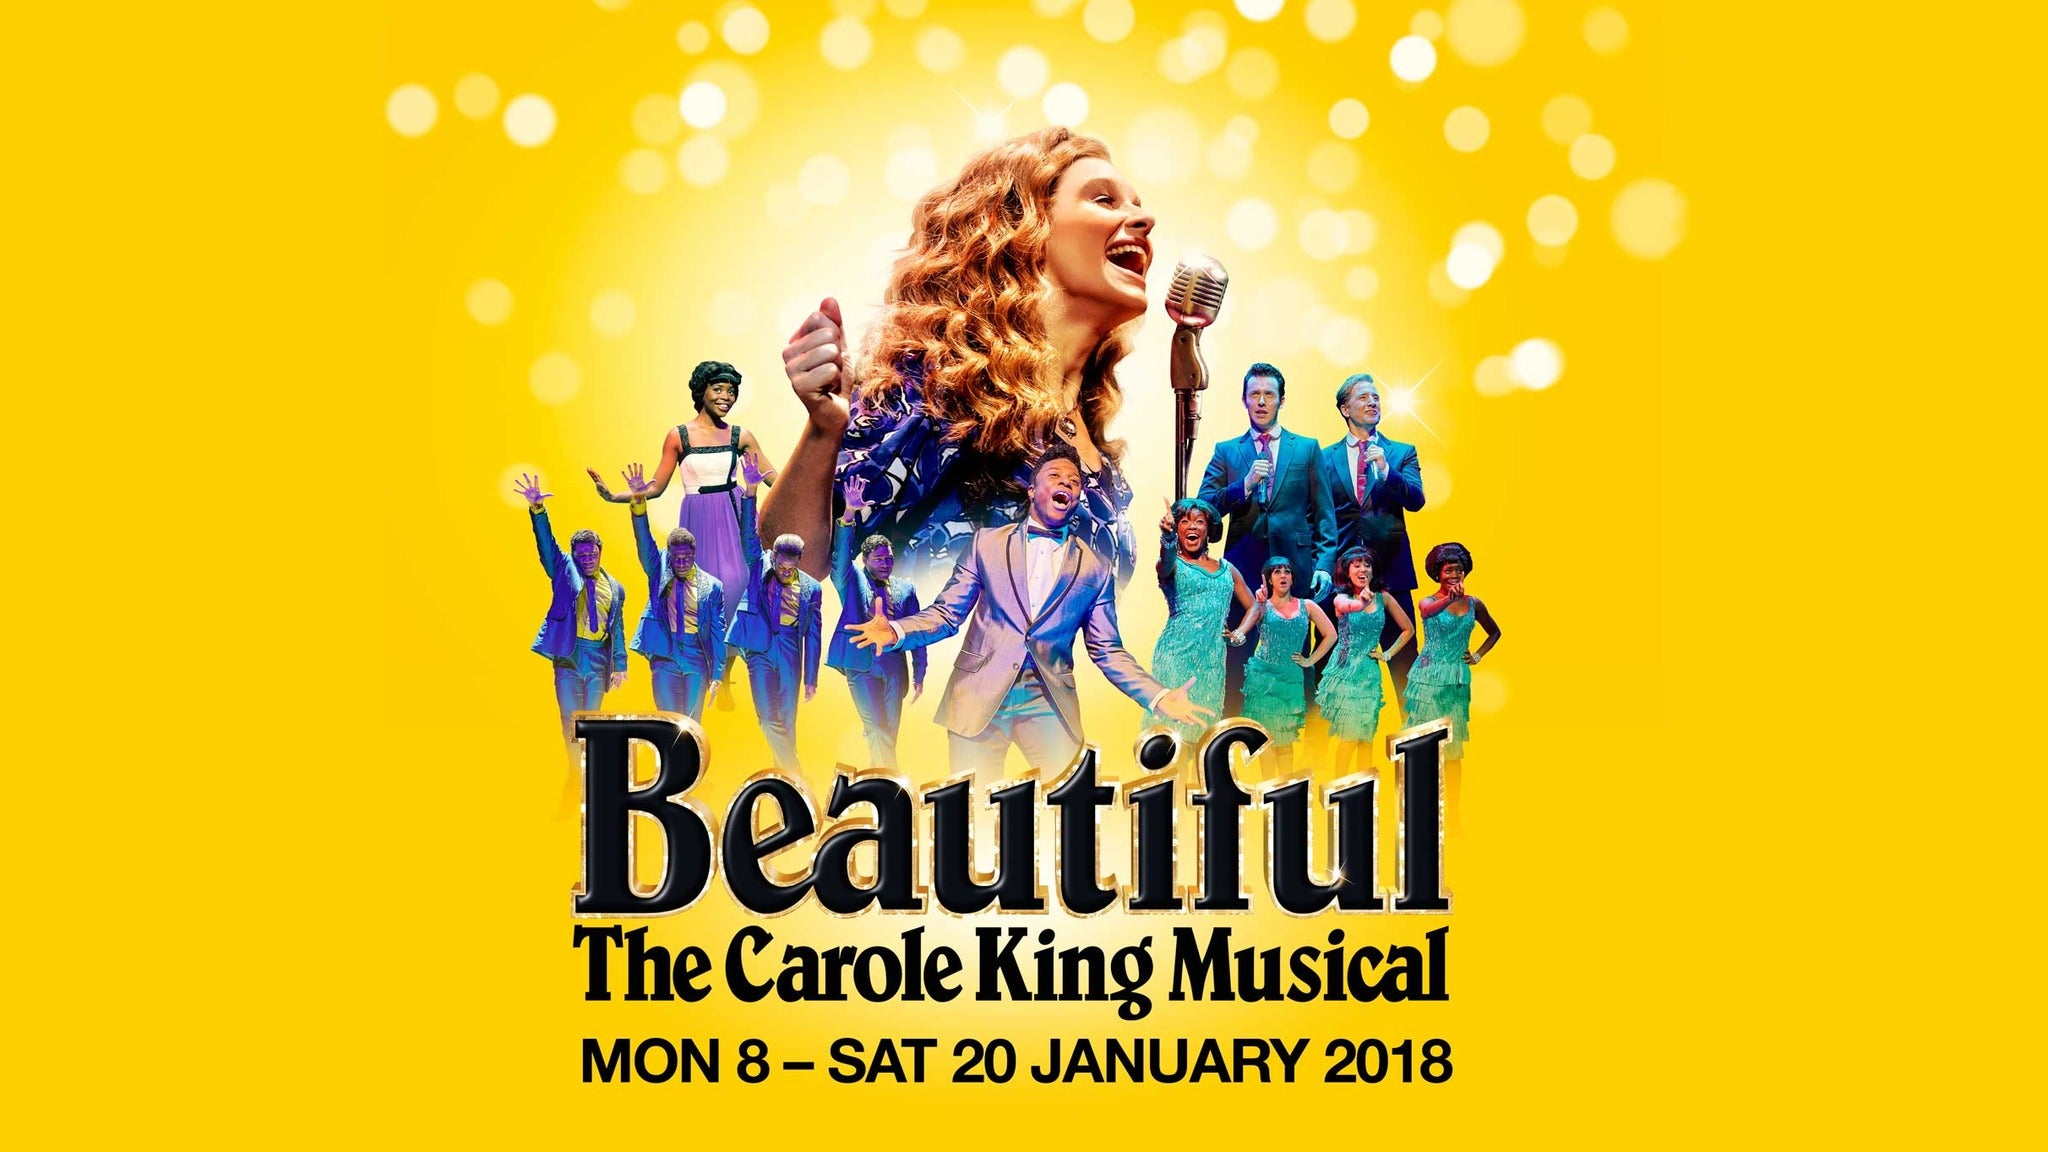 Beautiful: The Carole King Musical at Academy of Music - PA - Philadelphia, PA 19102